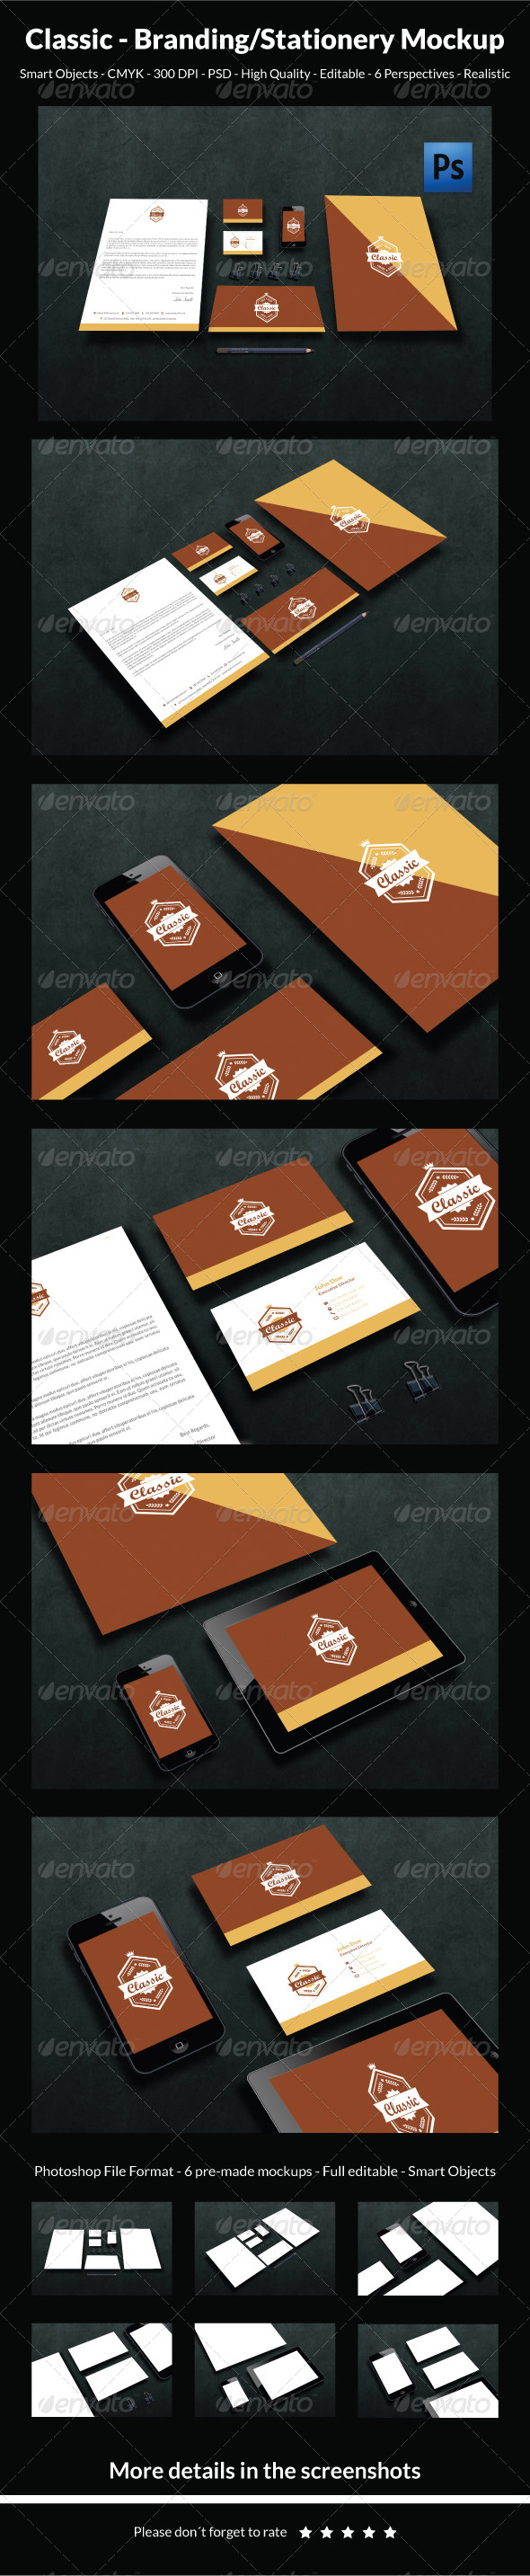 GraphicRiver Classic- Branding Stationery Mockup 6237006